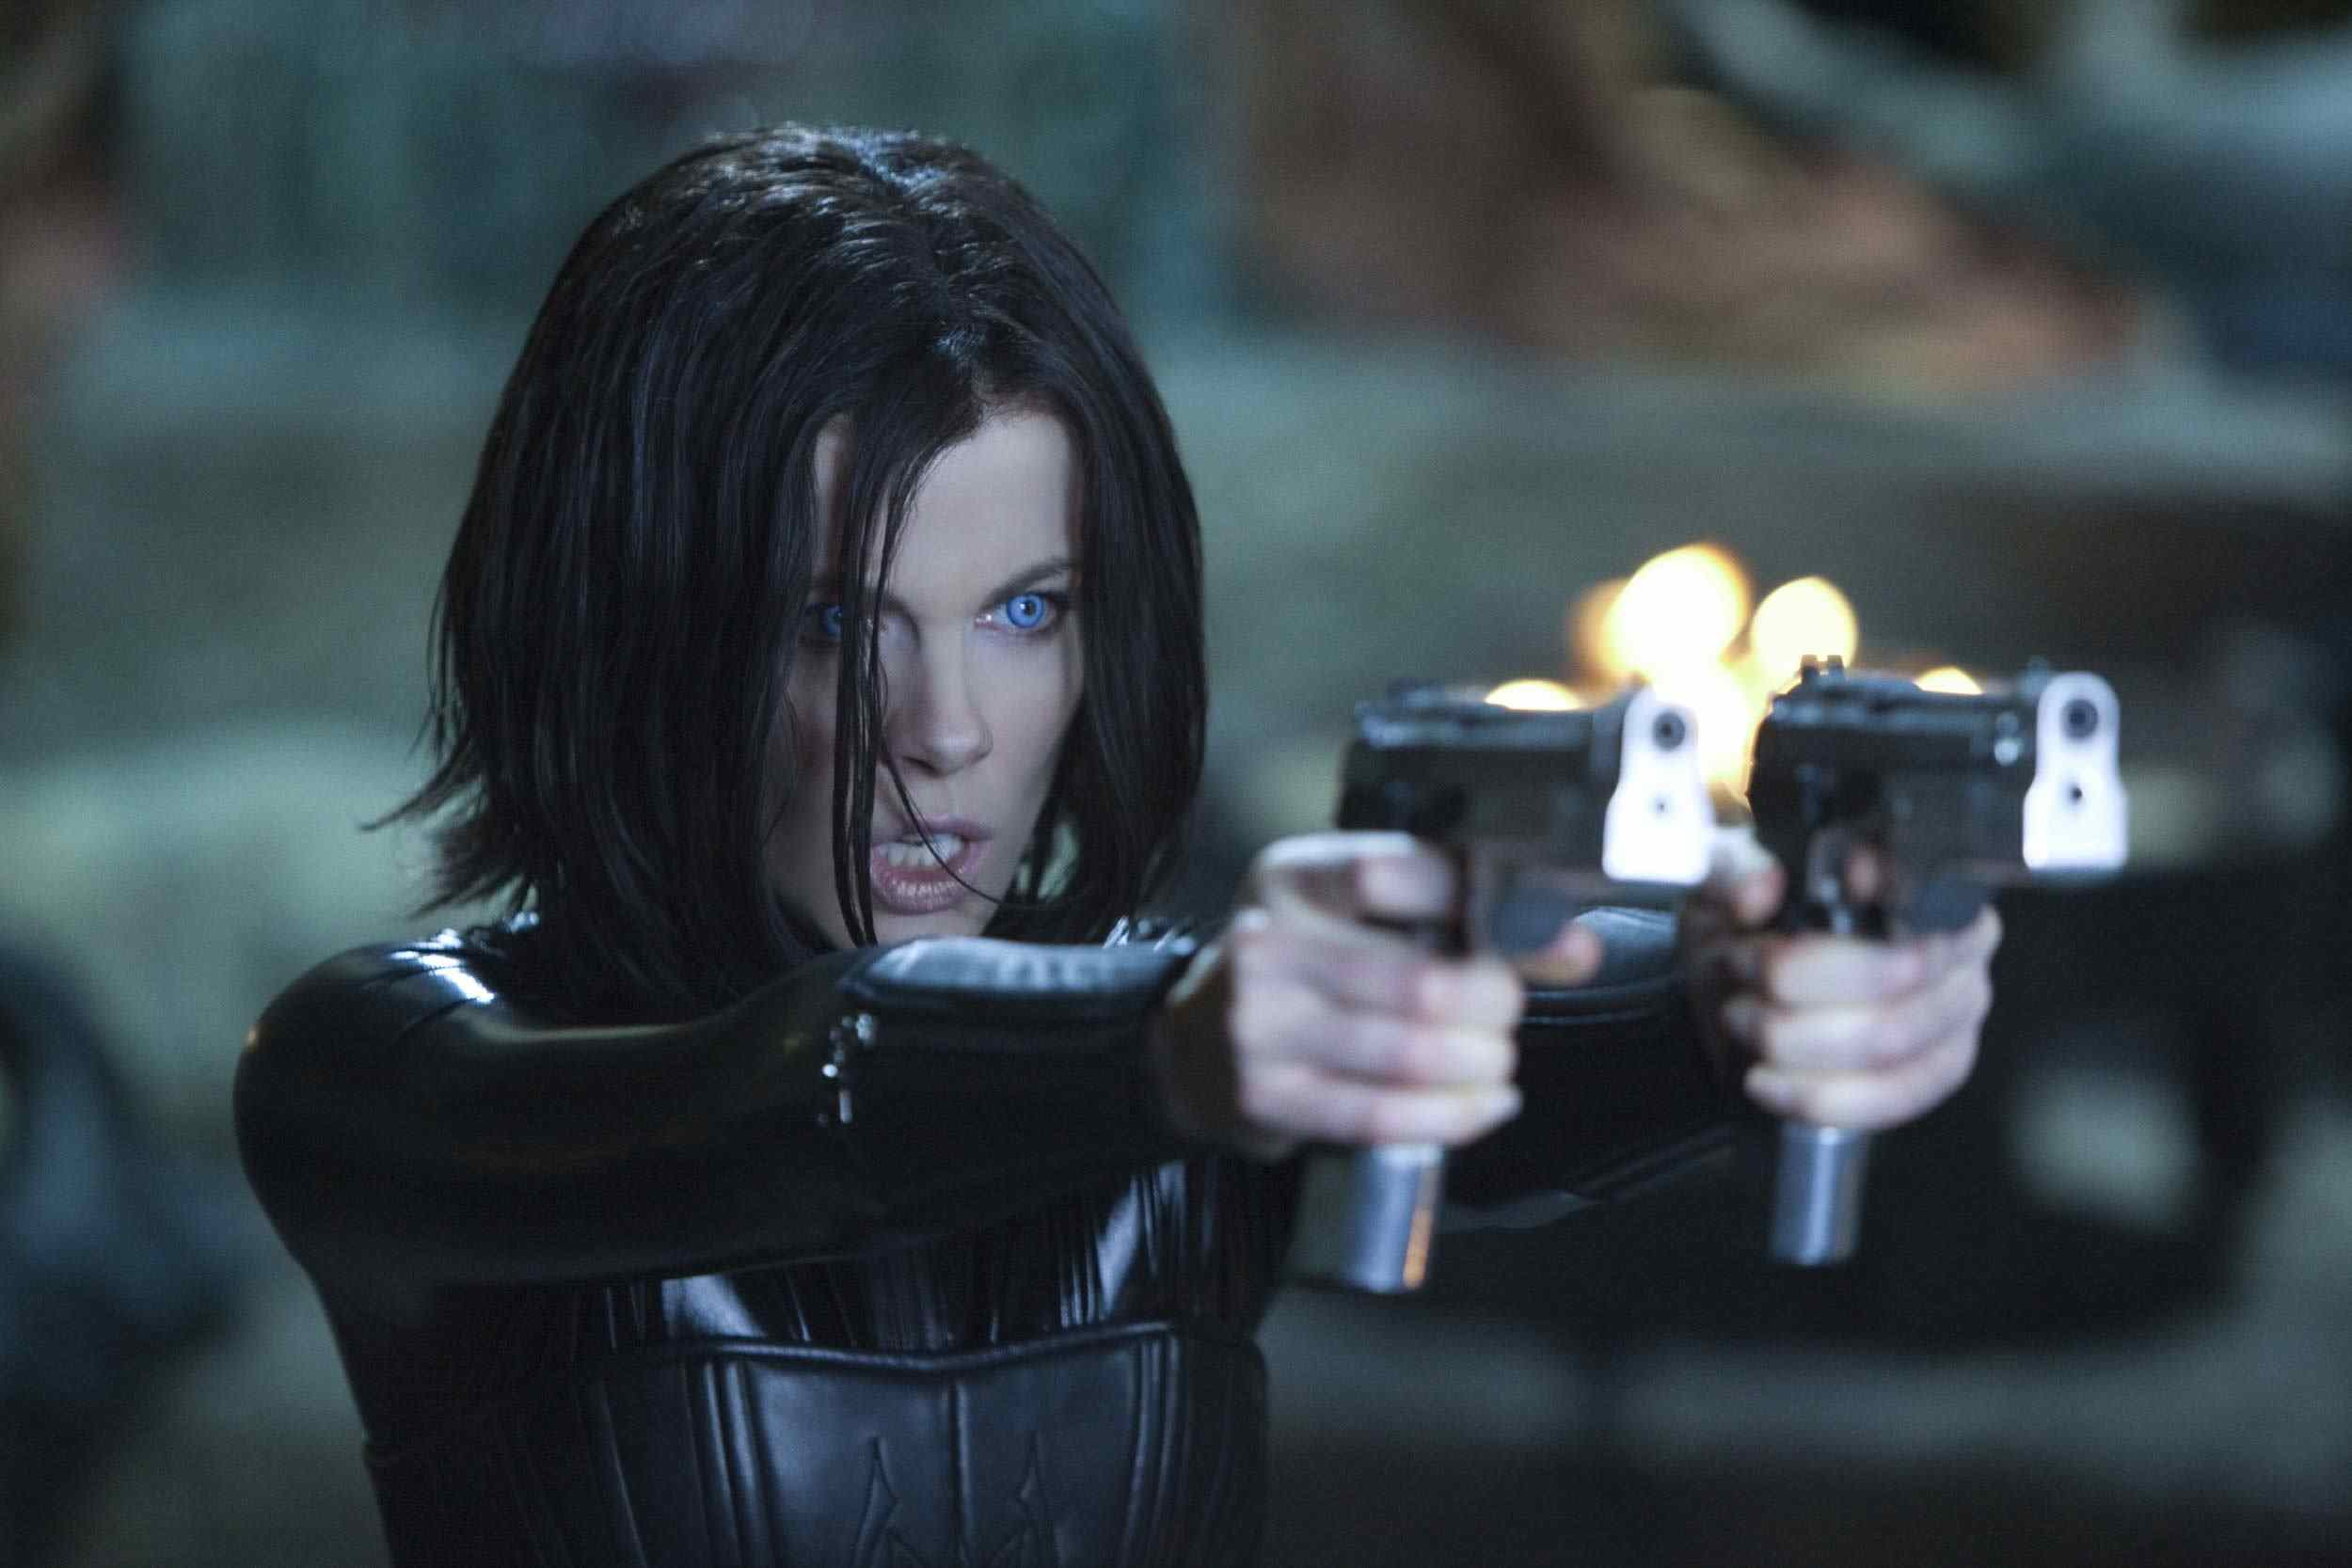 Selen (Kate Beckinsale) in Len Wiseman's Underworld.